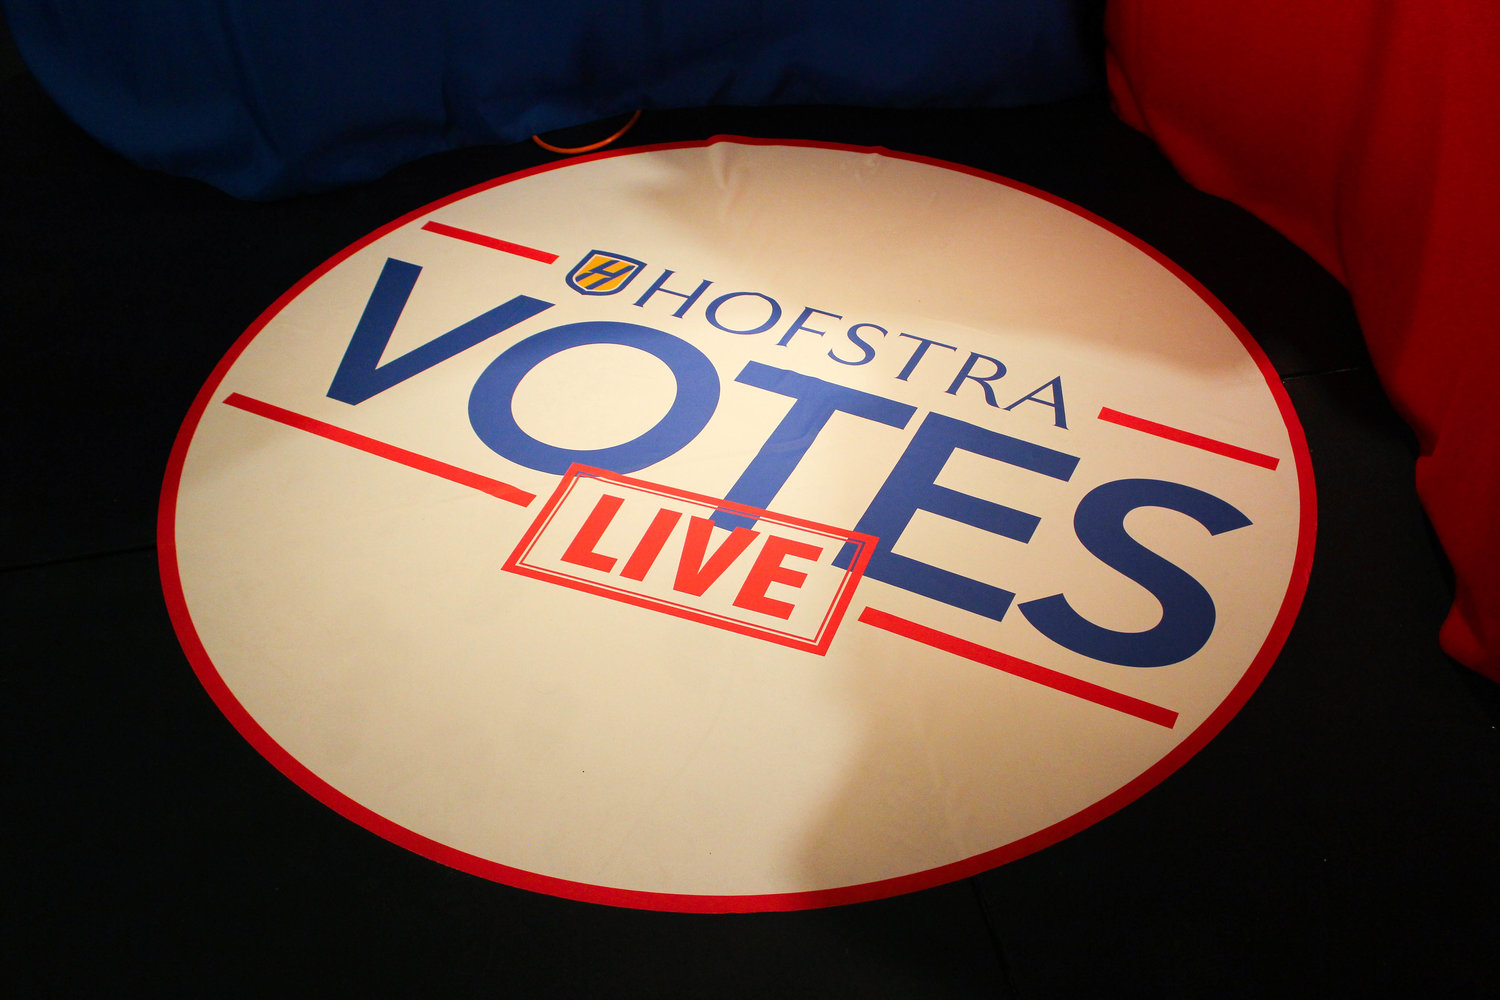 Hofstra Votes Live was the first simulcast of its kind produced by Hofstra University students.